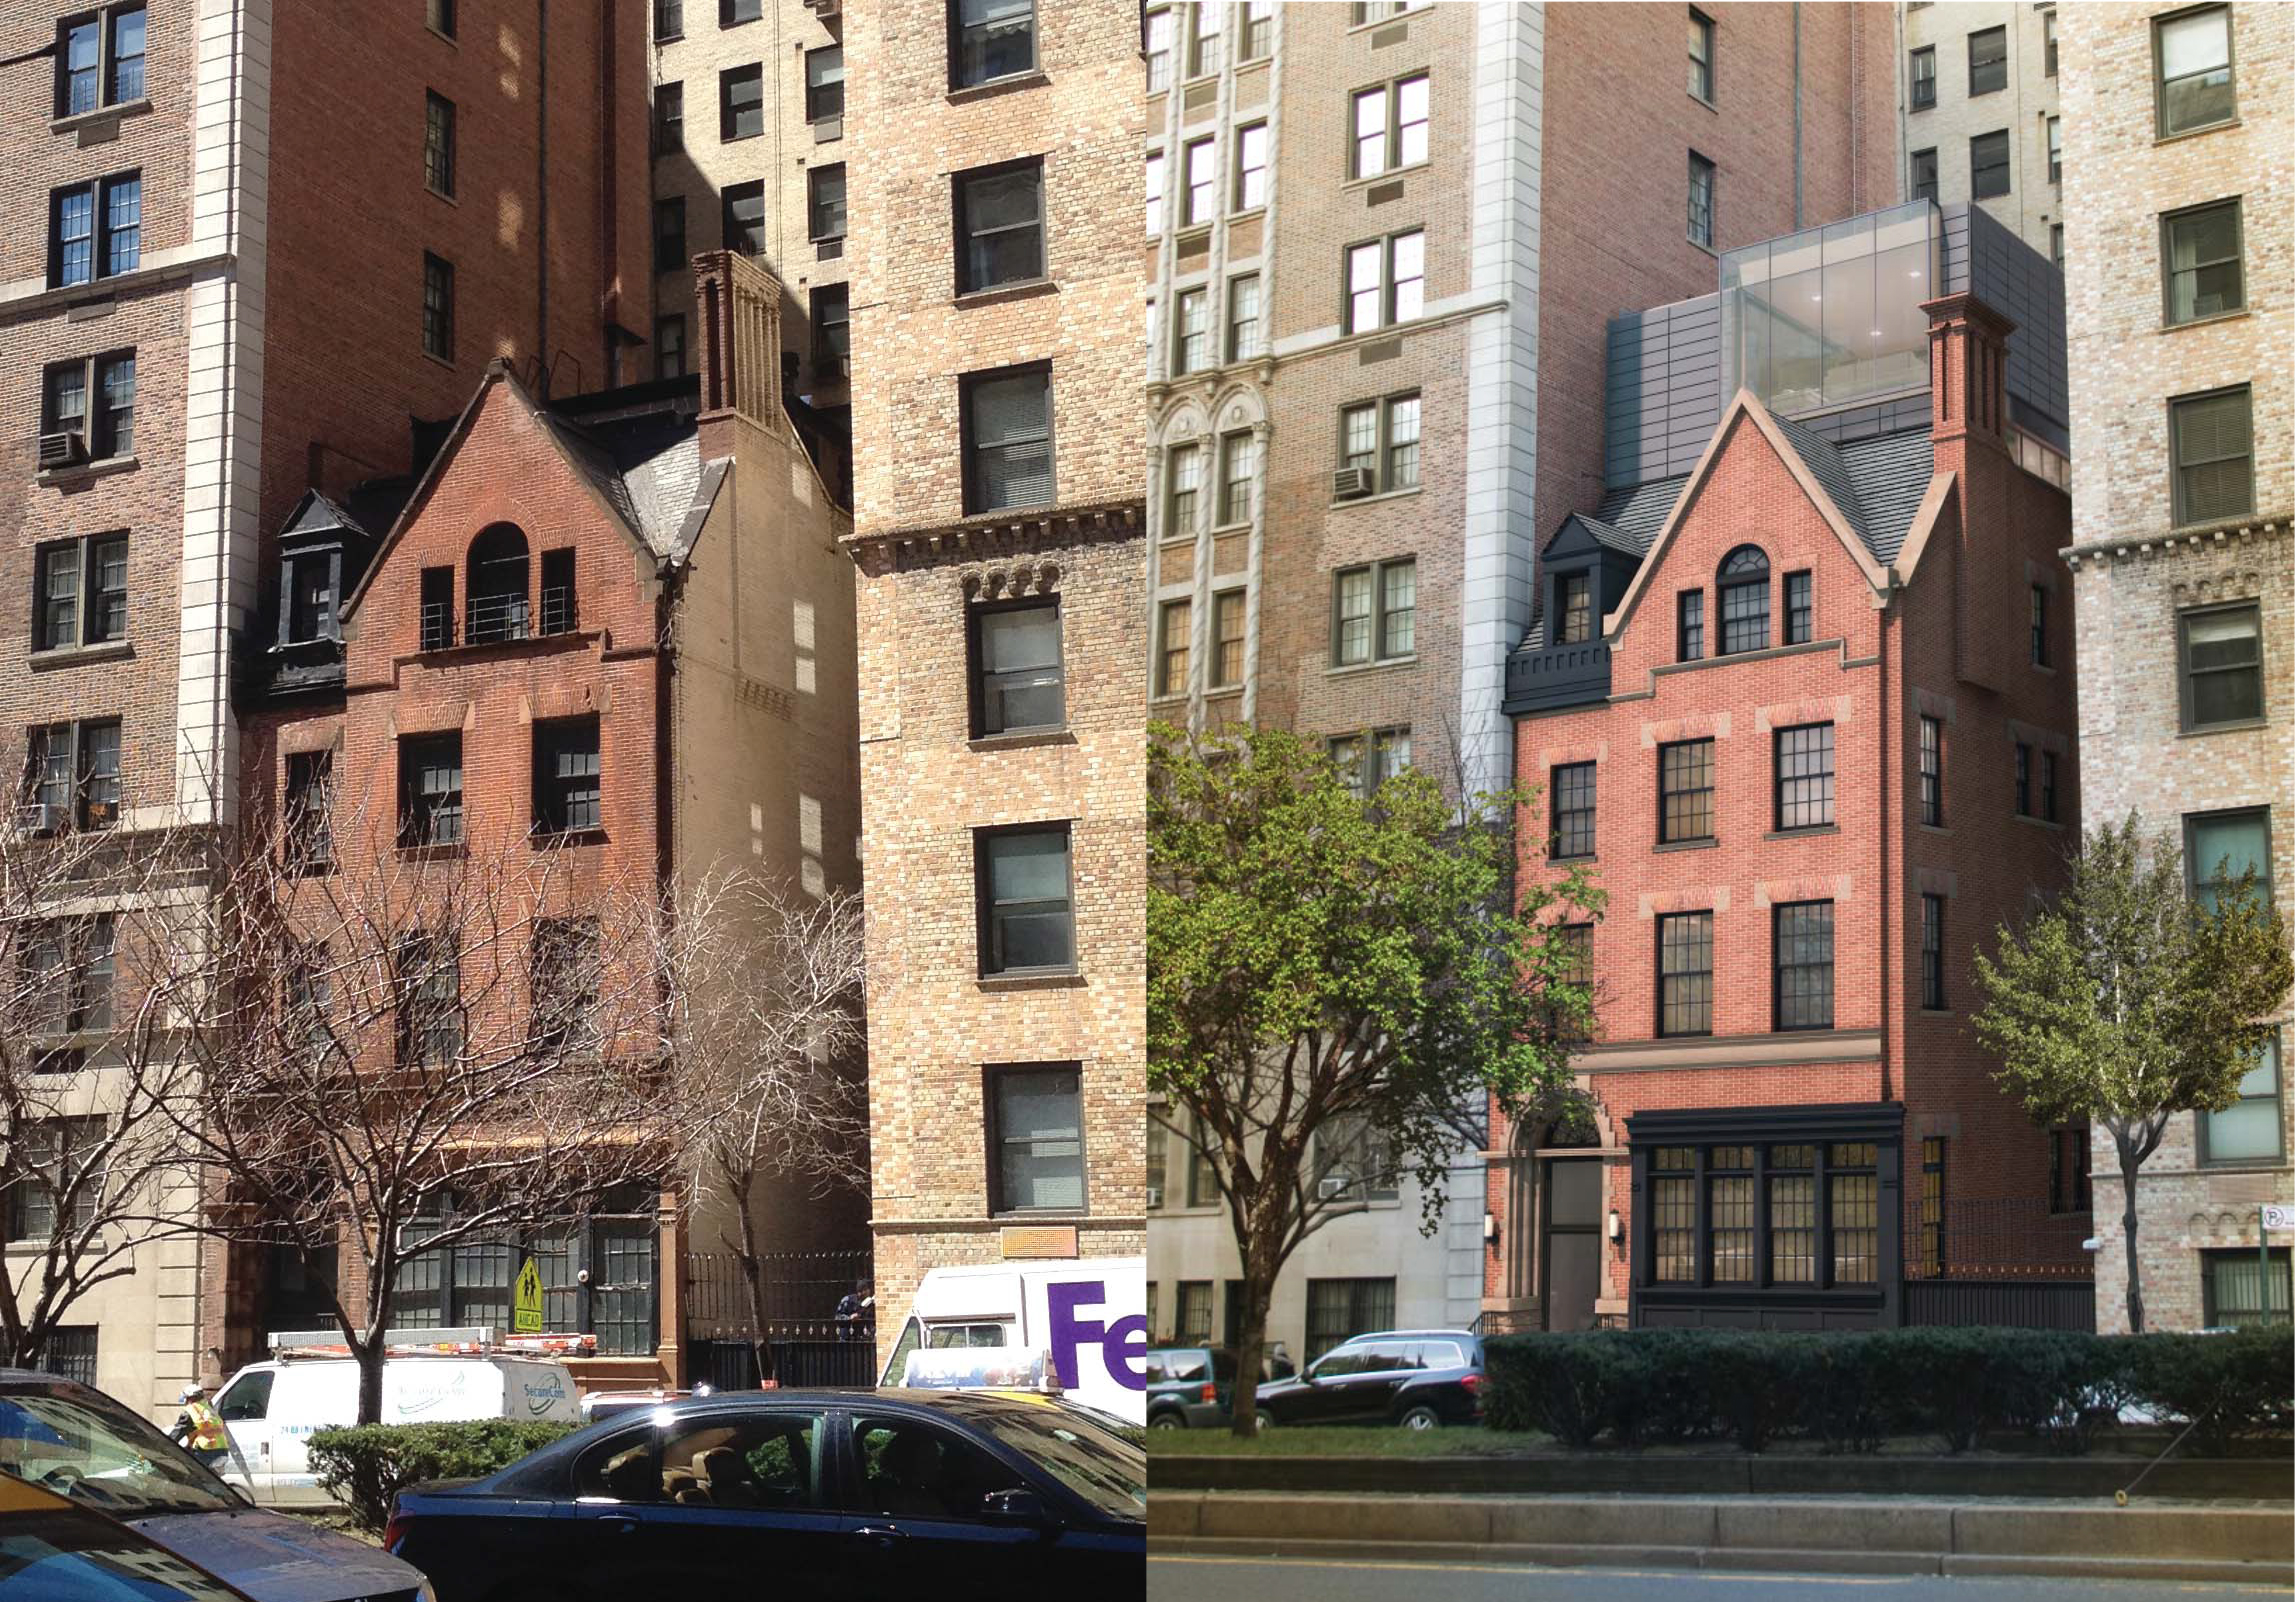 890 Park Avenue, existing and proposed.